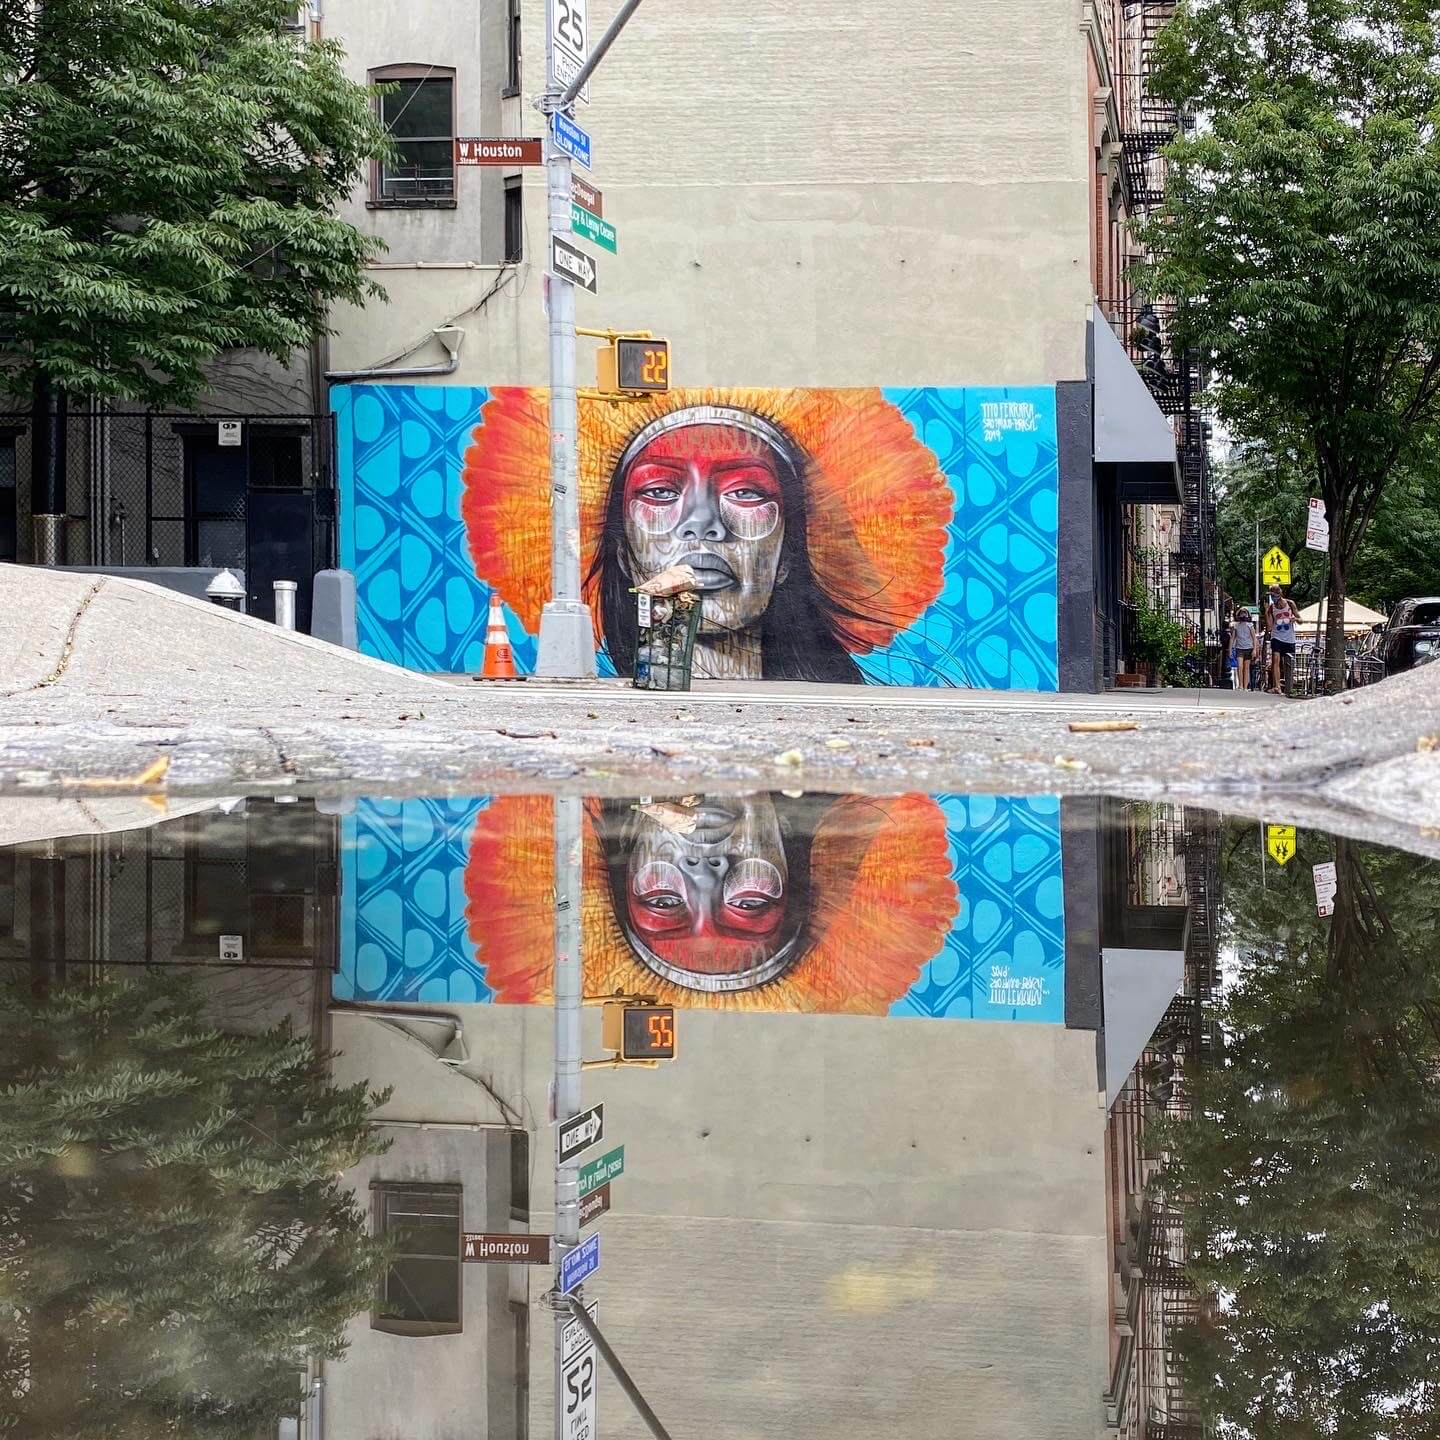 Reflection in Puddle - Street Art Photography by Sarah Sansom